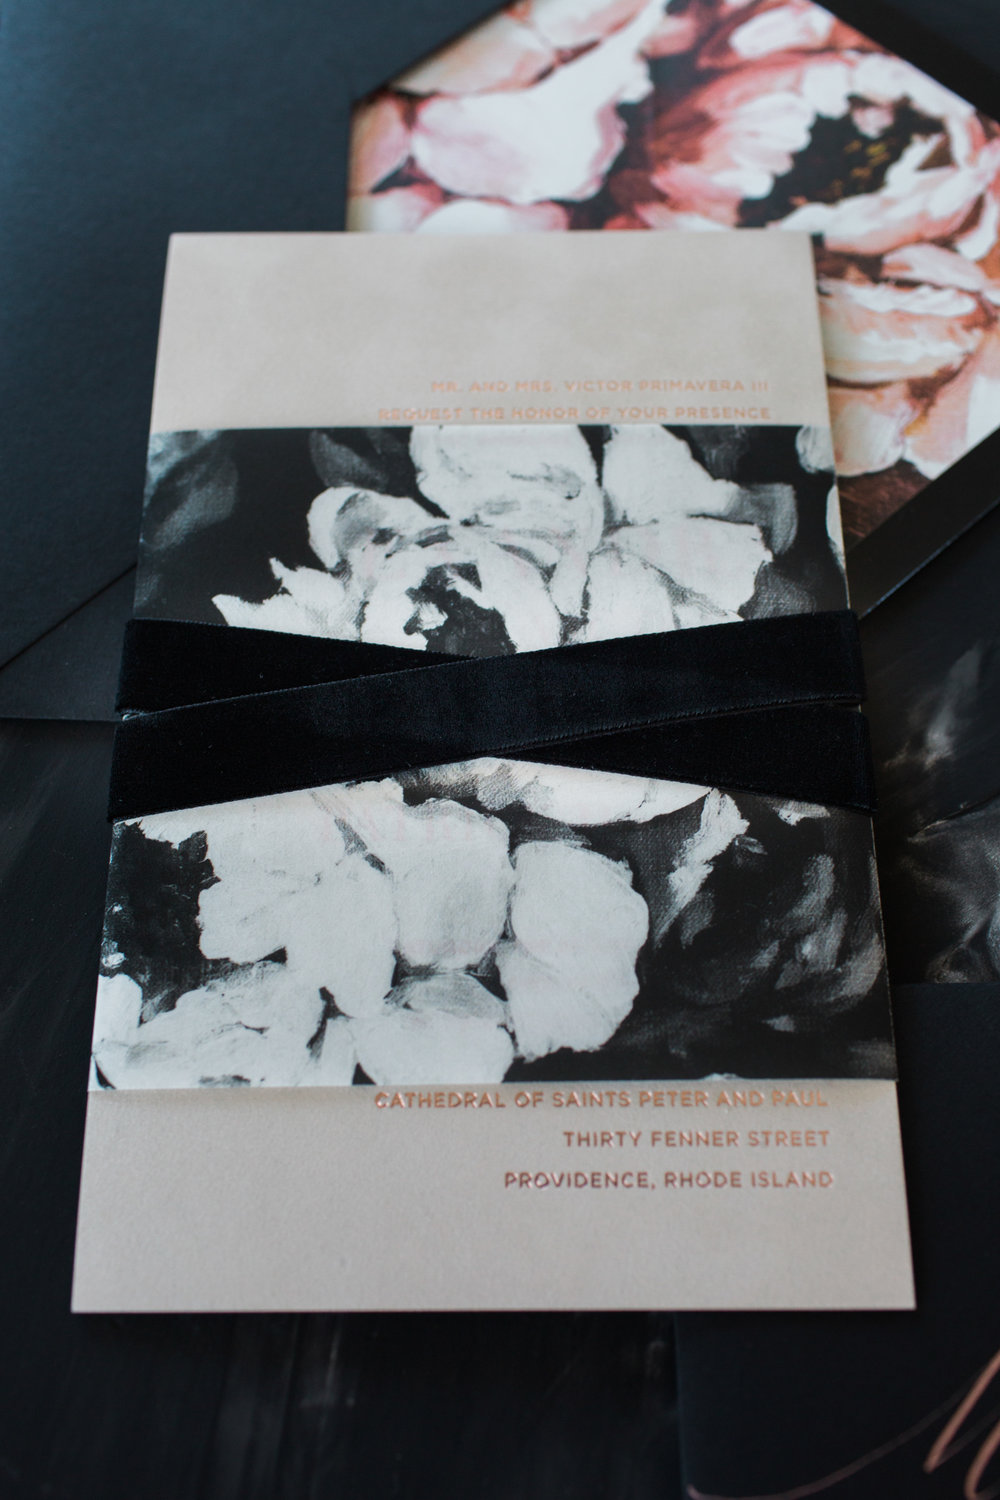 AP_Wedding_Invites_Rose-Gold-Foil-Newport-Moody-Floral-Invitations-champagne-and-ink-Molly-Lo-6.jpg